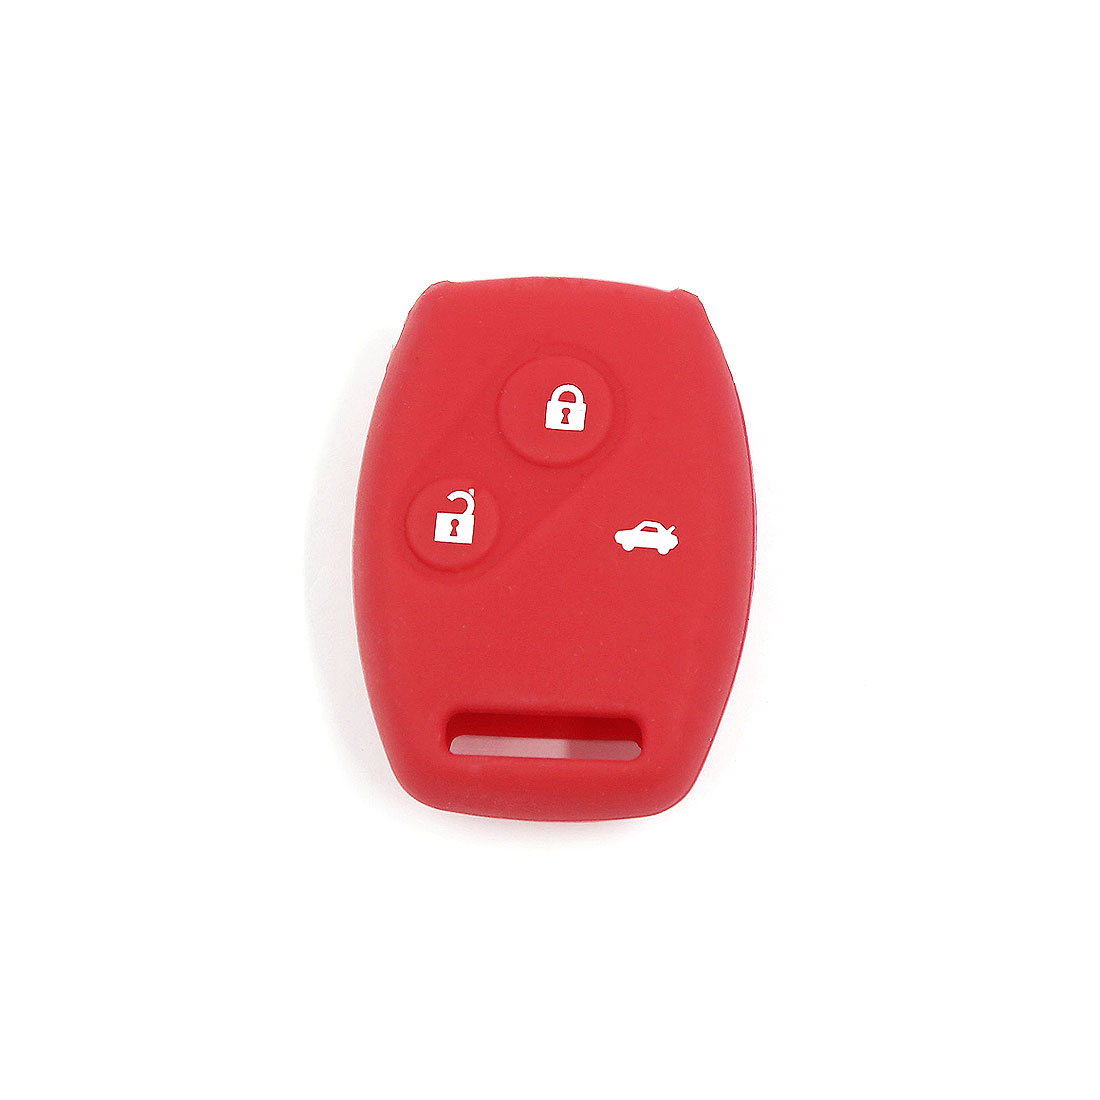 Red Car Silicone Remote Fob Key Case Cover for Honda Accord Civic Pilot 3 Button